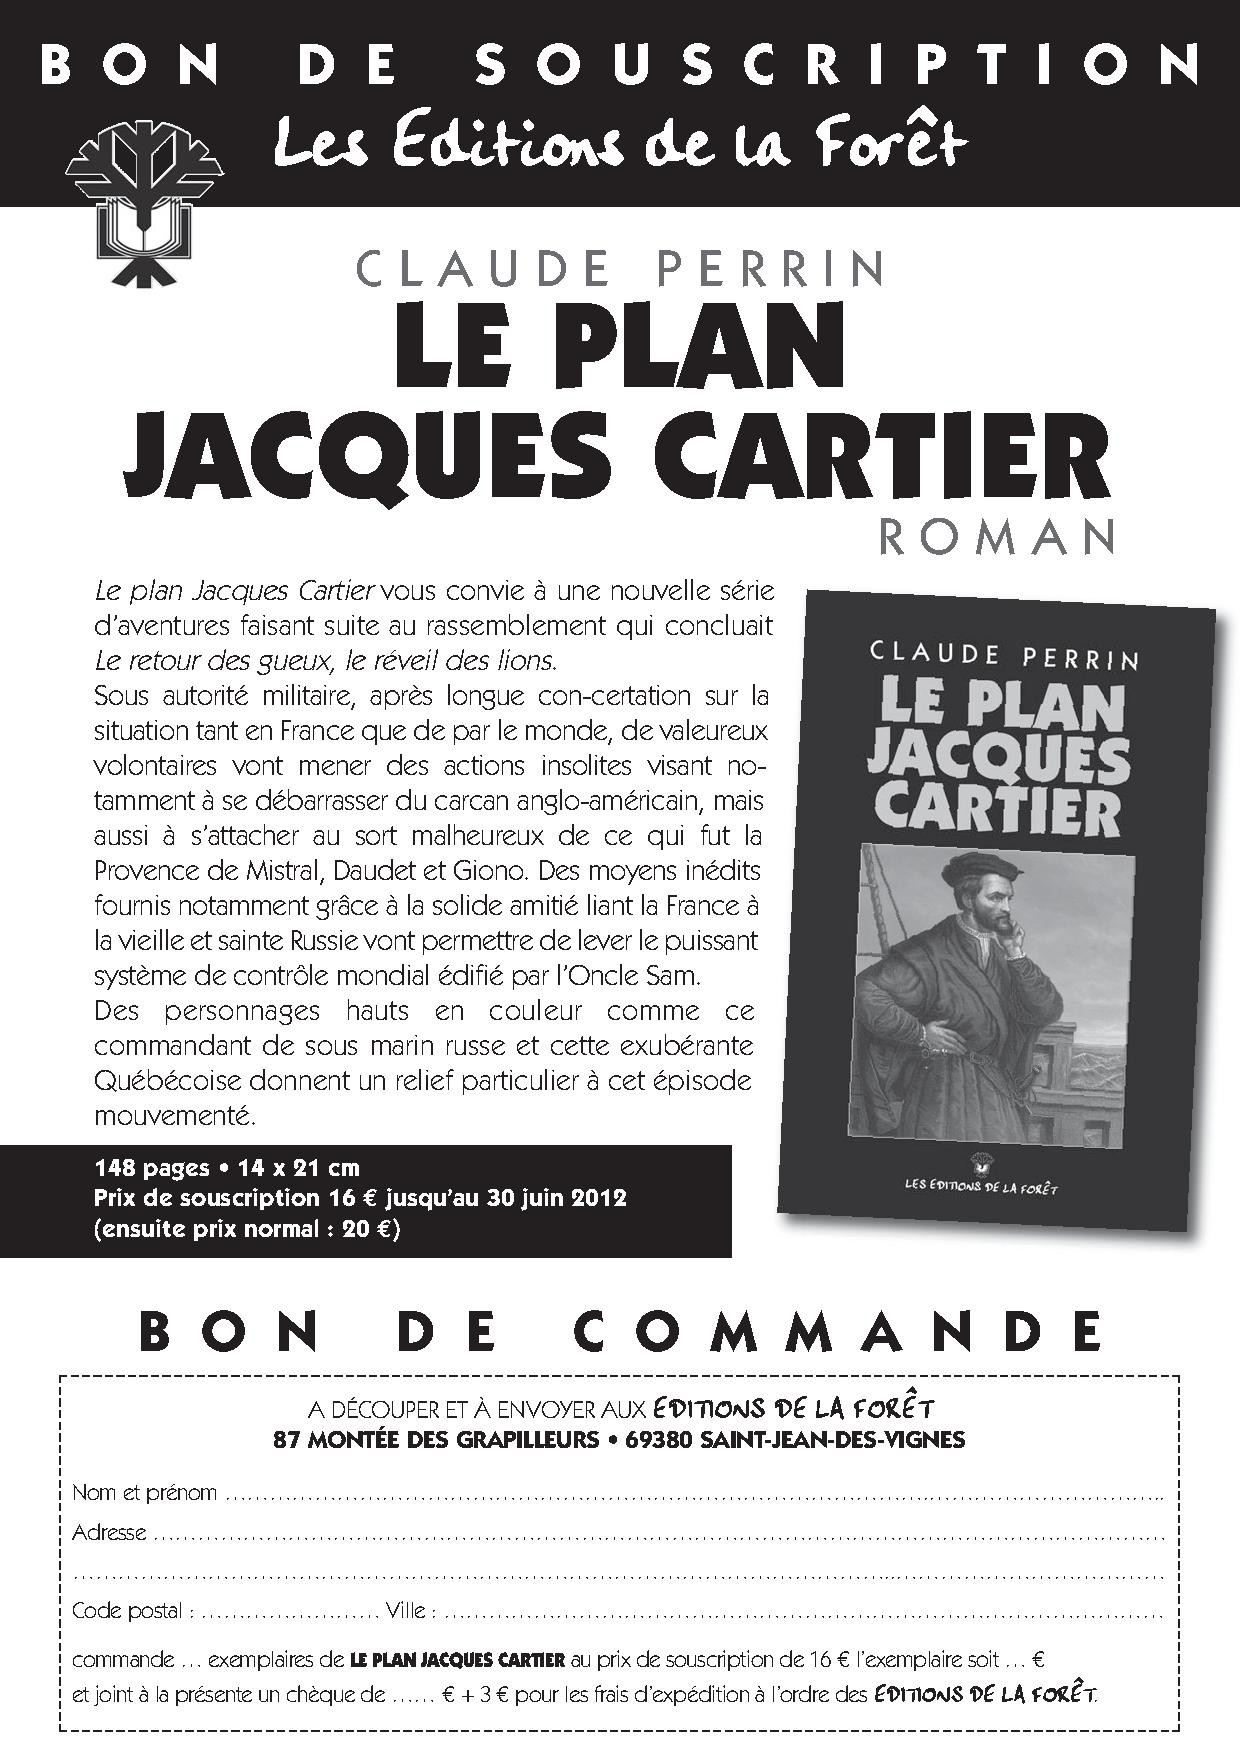 Bon_de_souscription_plan_jacques_cartier